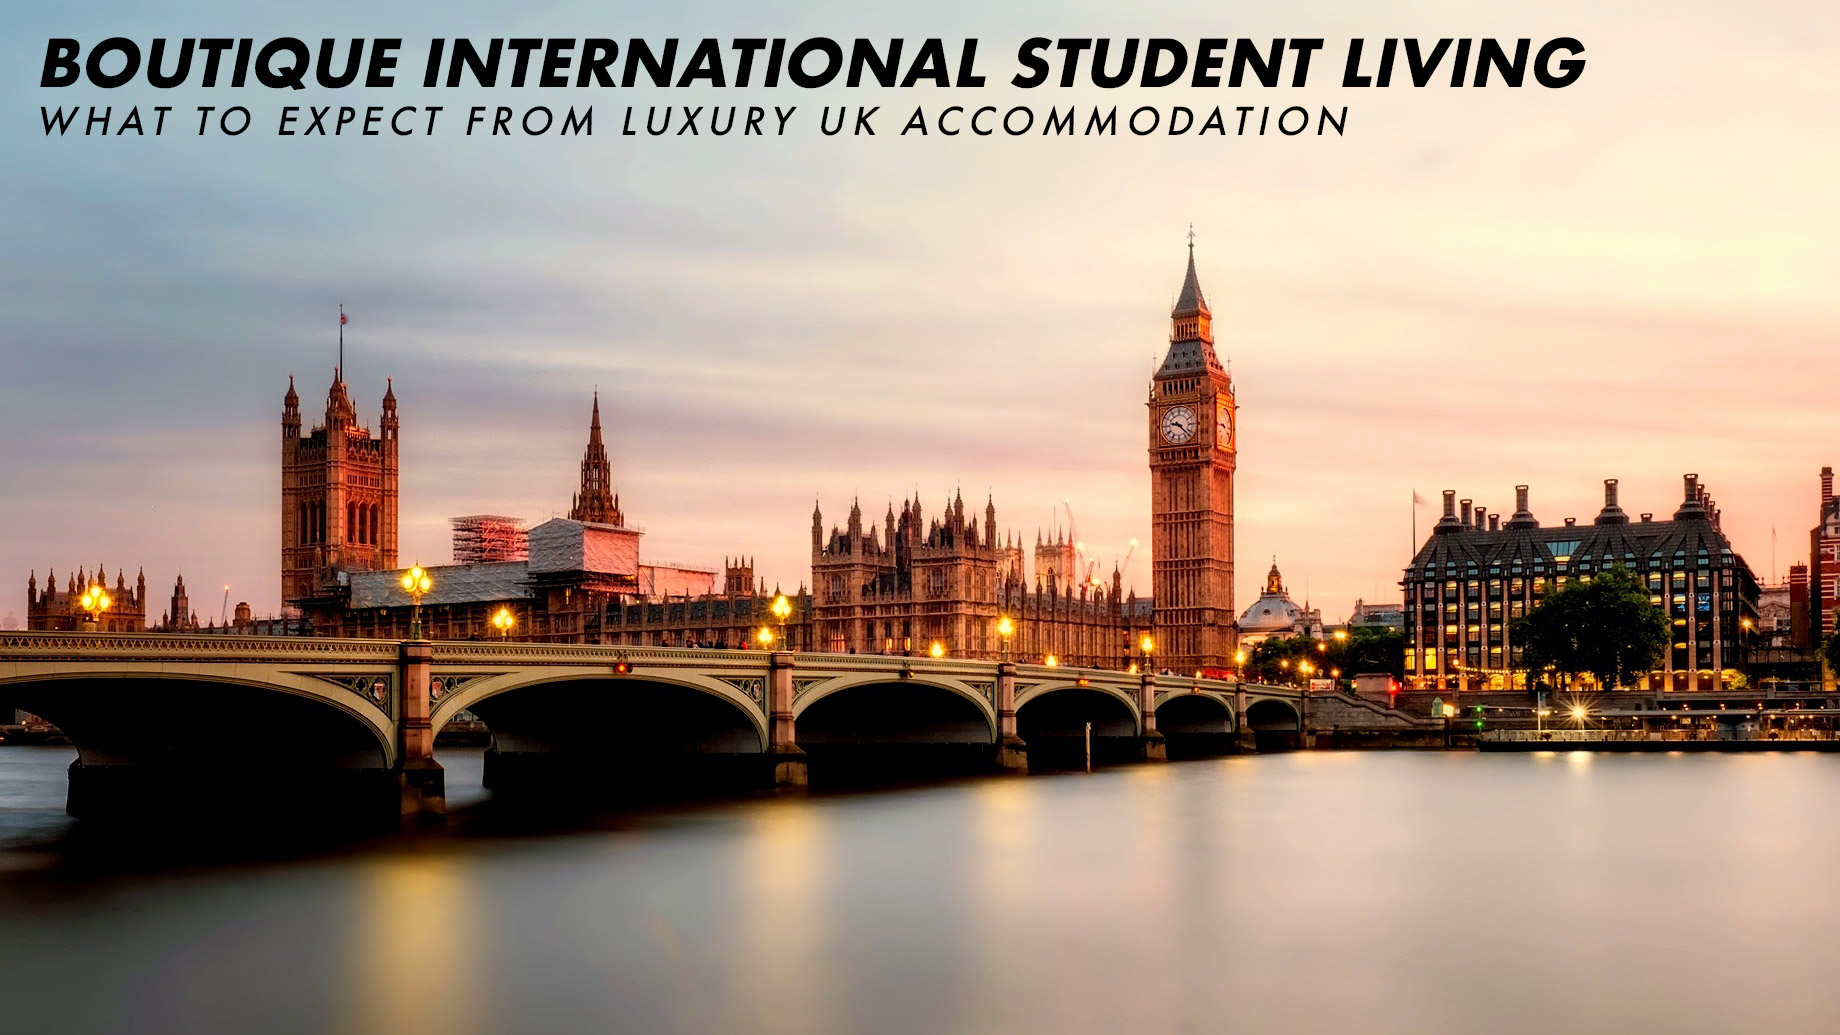 Boutique International Student Living - What to Expect from Luxury UK Accommodation